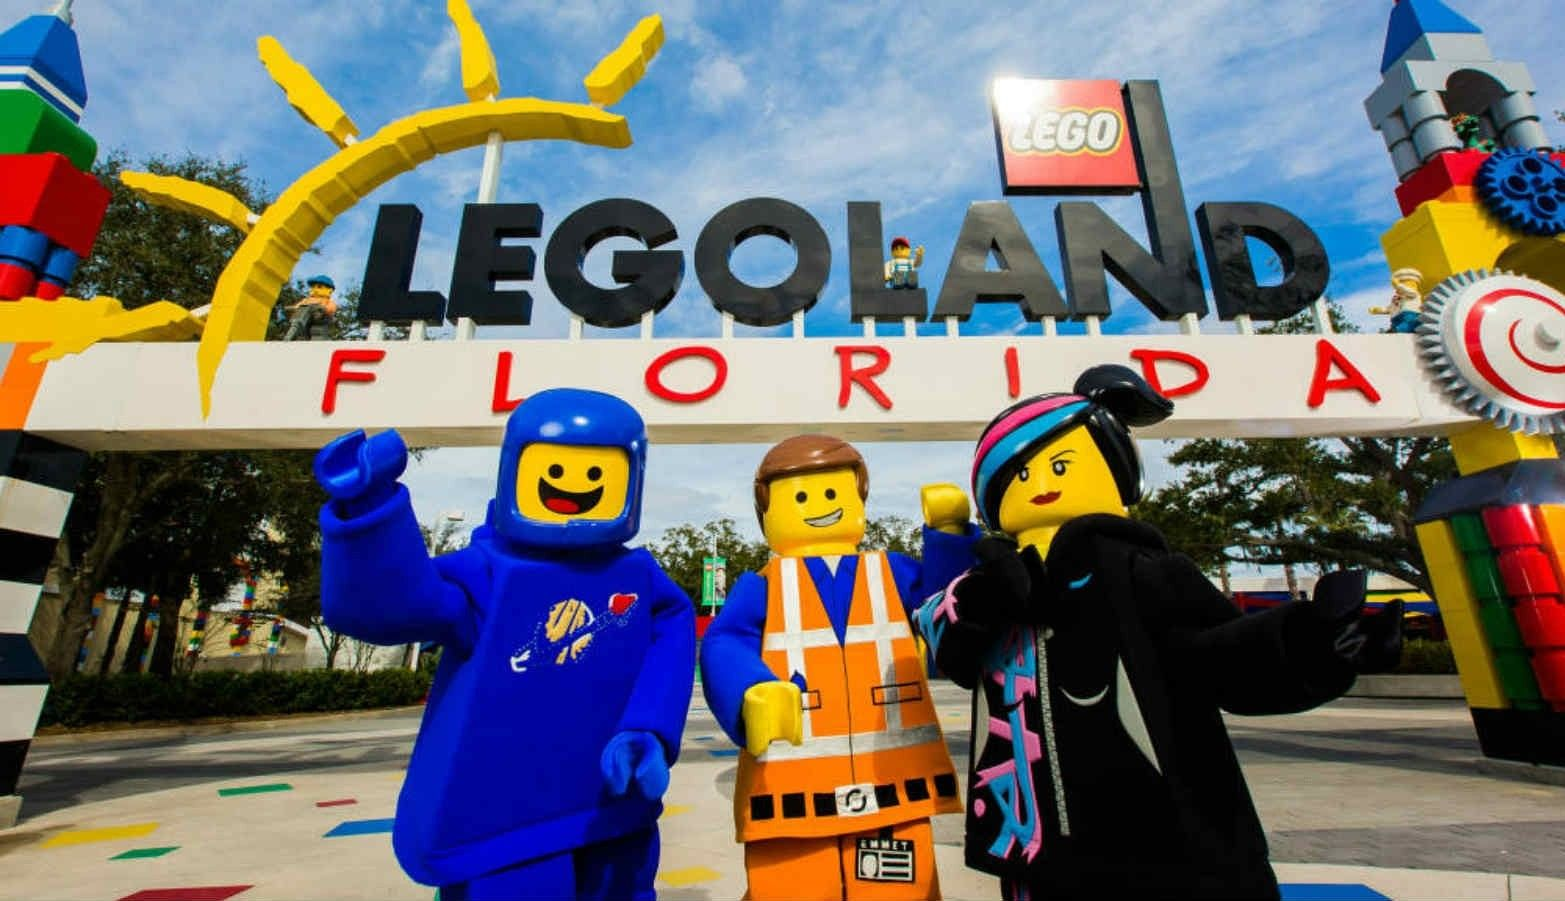 Kids Go Free Kids At Legoland Florida With The Purchase Of An